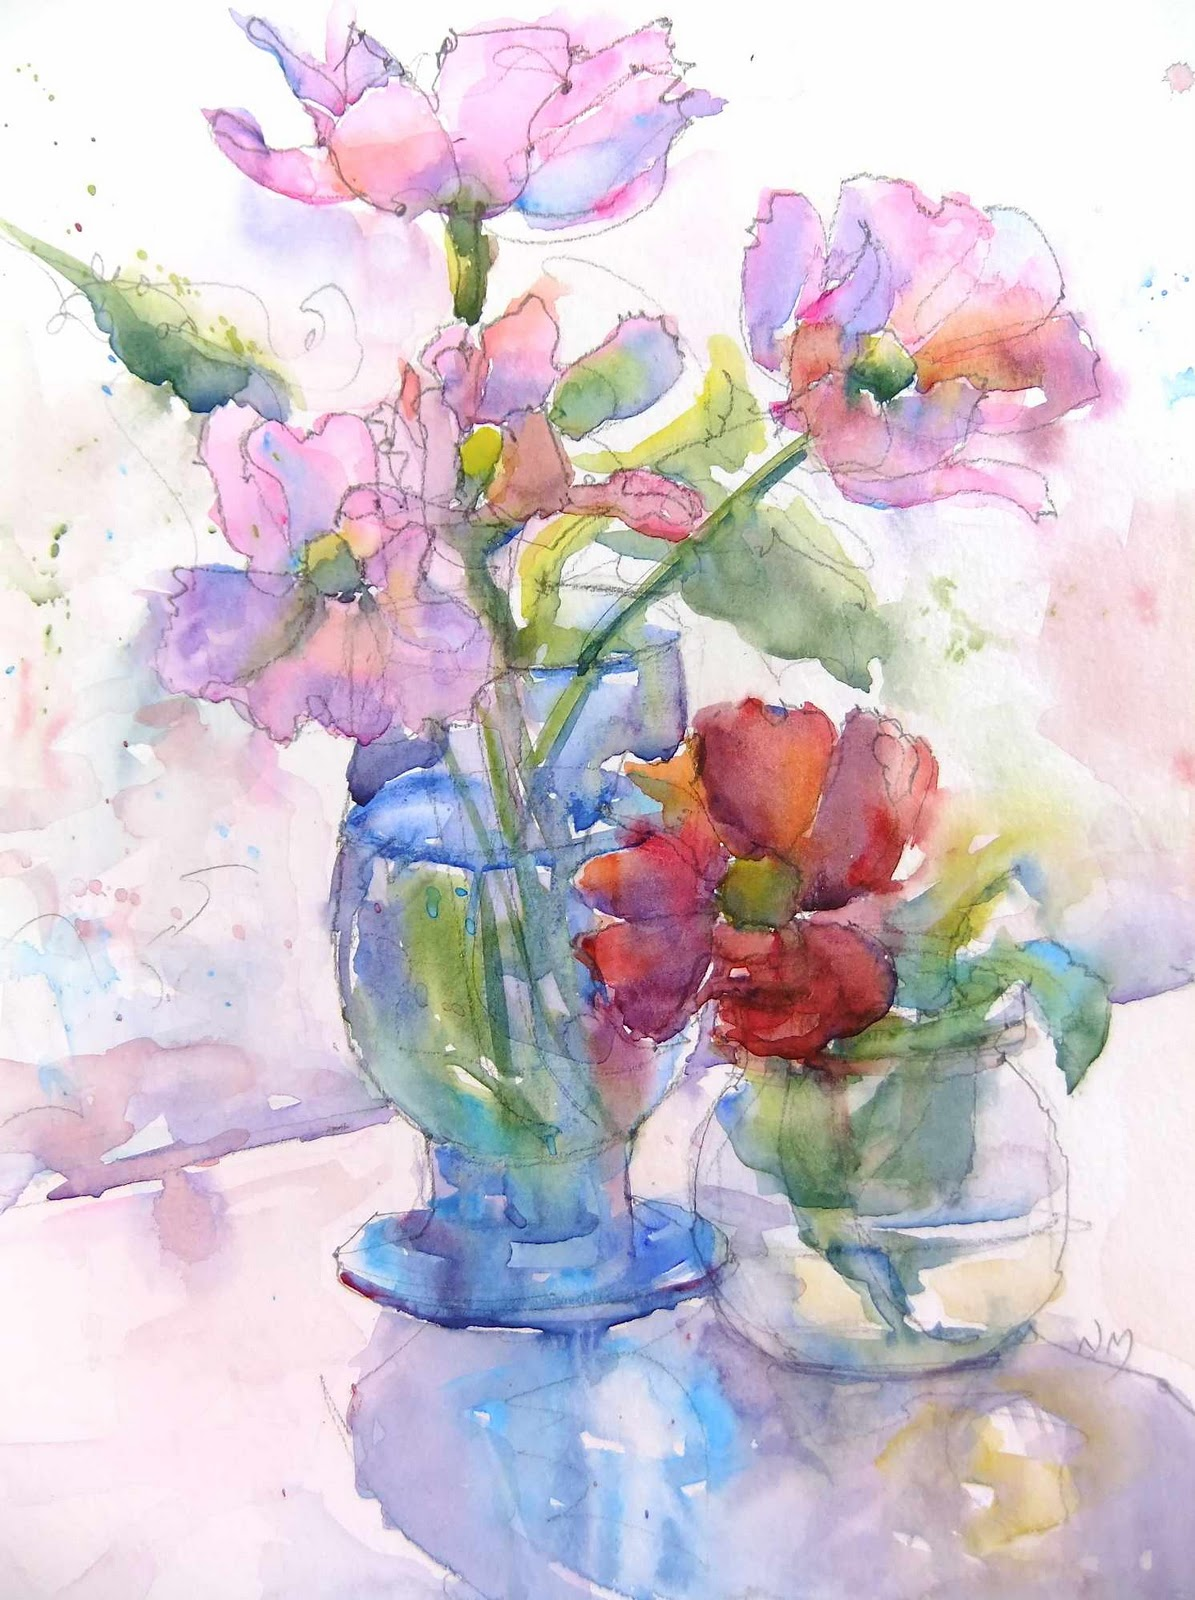 Nora macphail artist december 2011 for Watercolor painting flowers